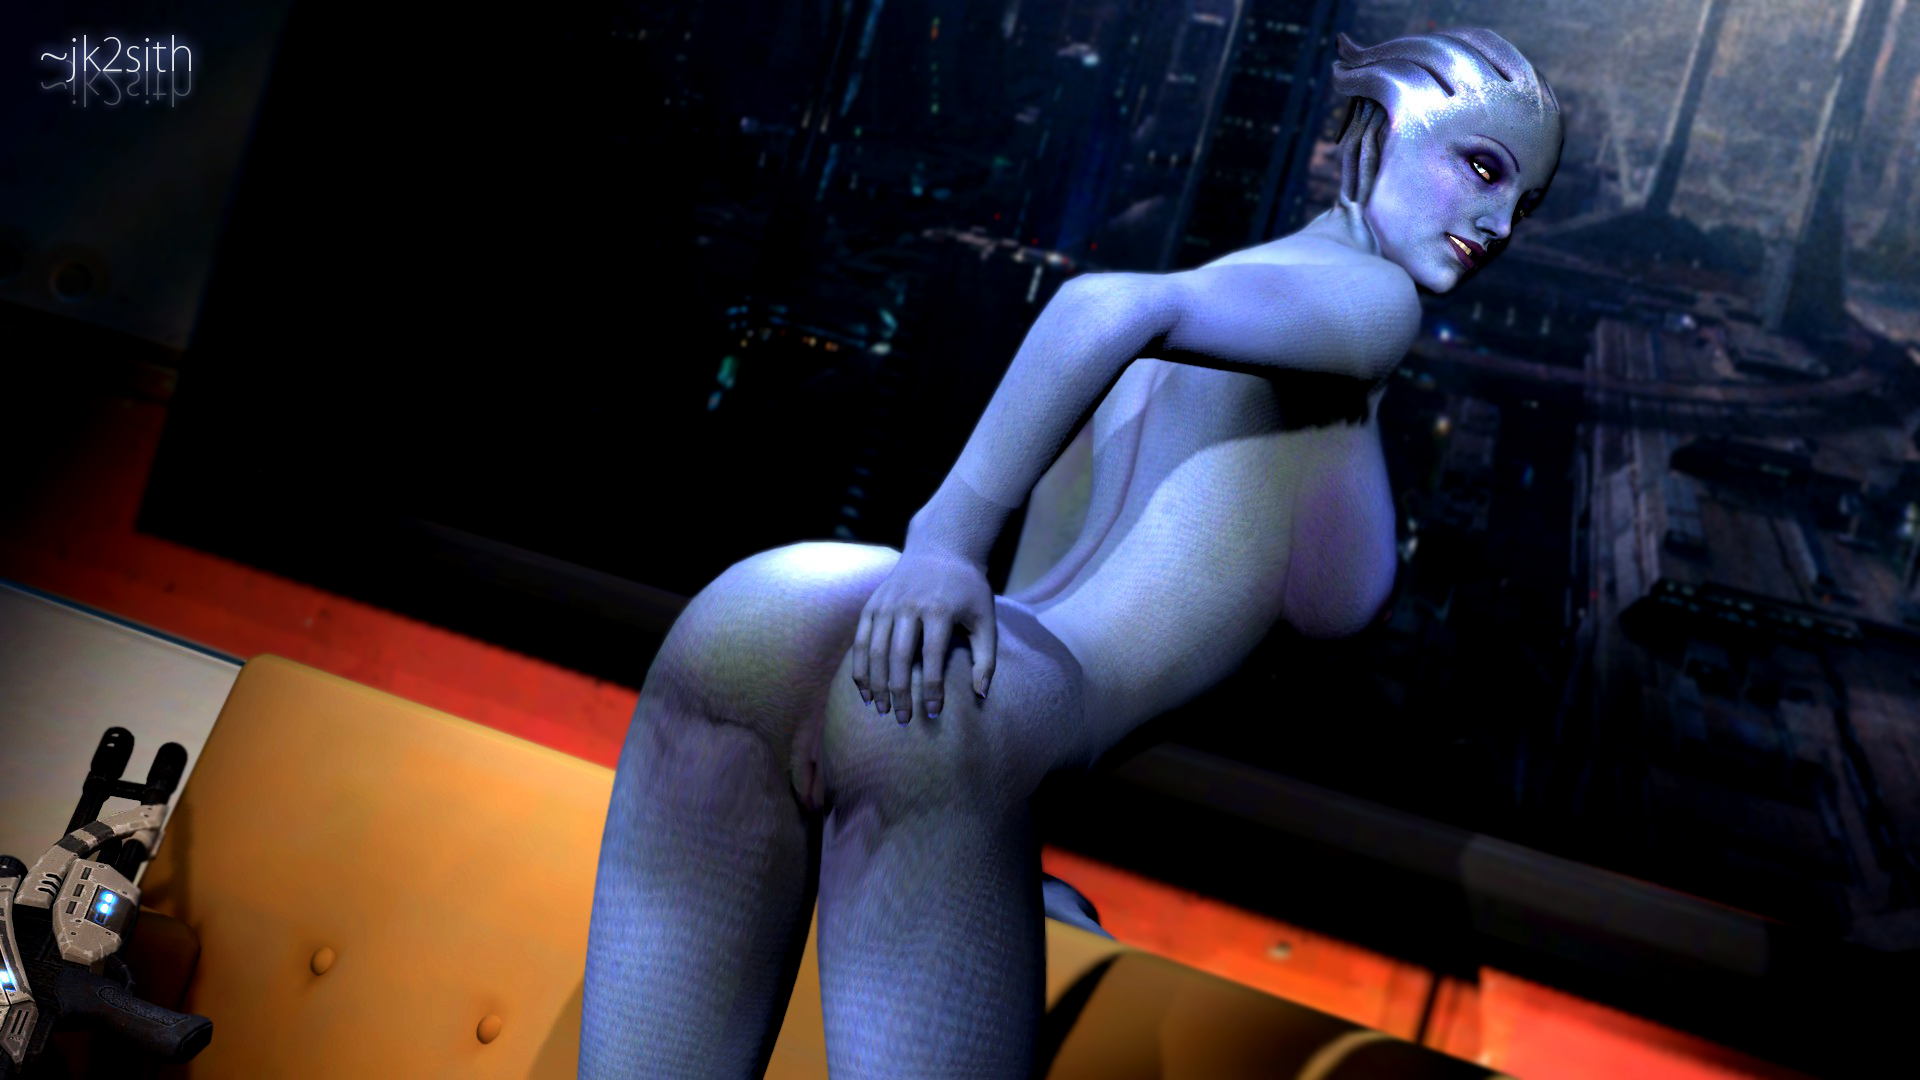 Mass effect female character porn mod adult tube